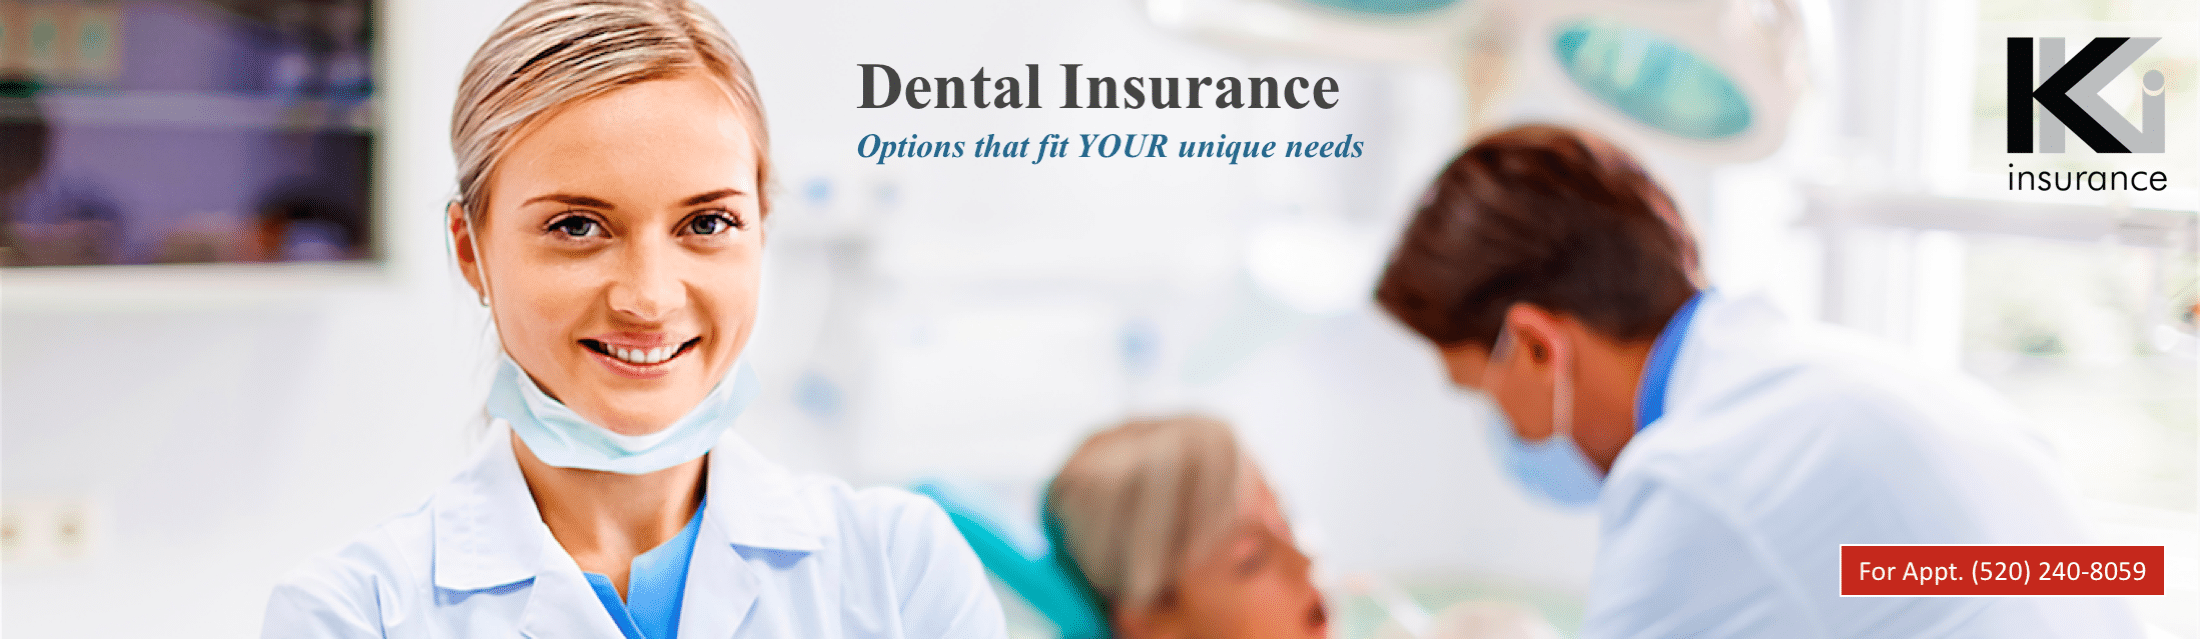 Dental Insurance coverage in Tucson, Arizona by agent Kim Kraft Insurance.